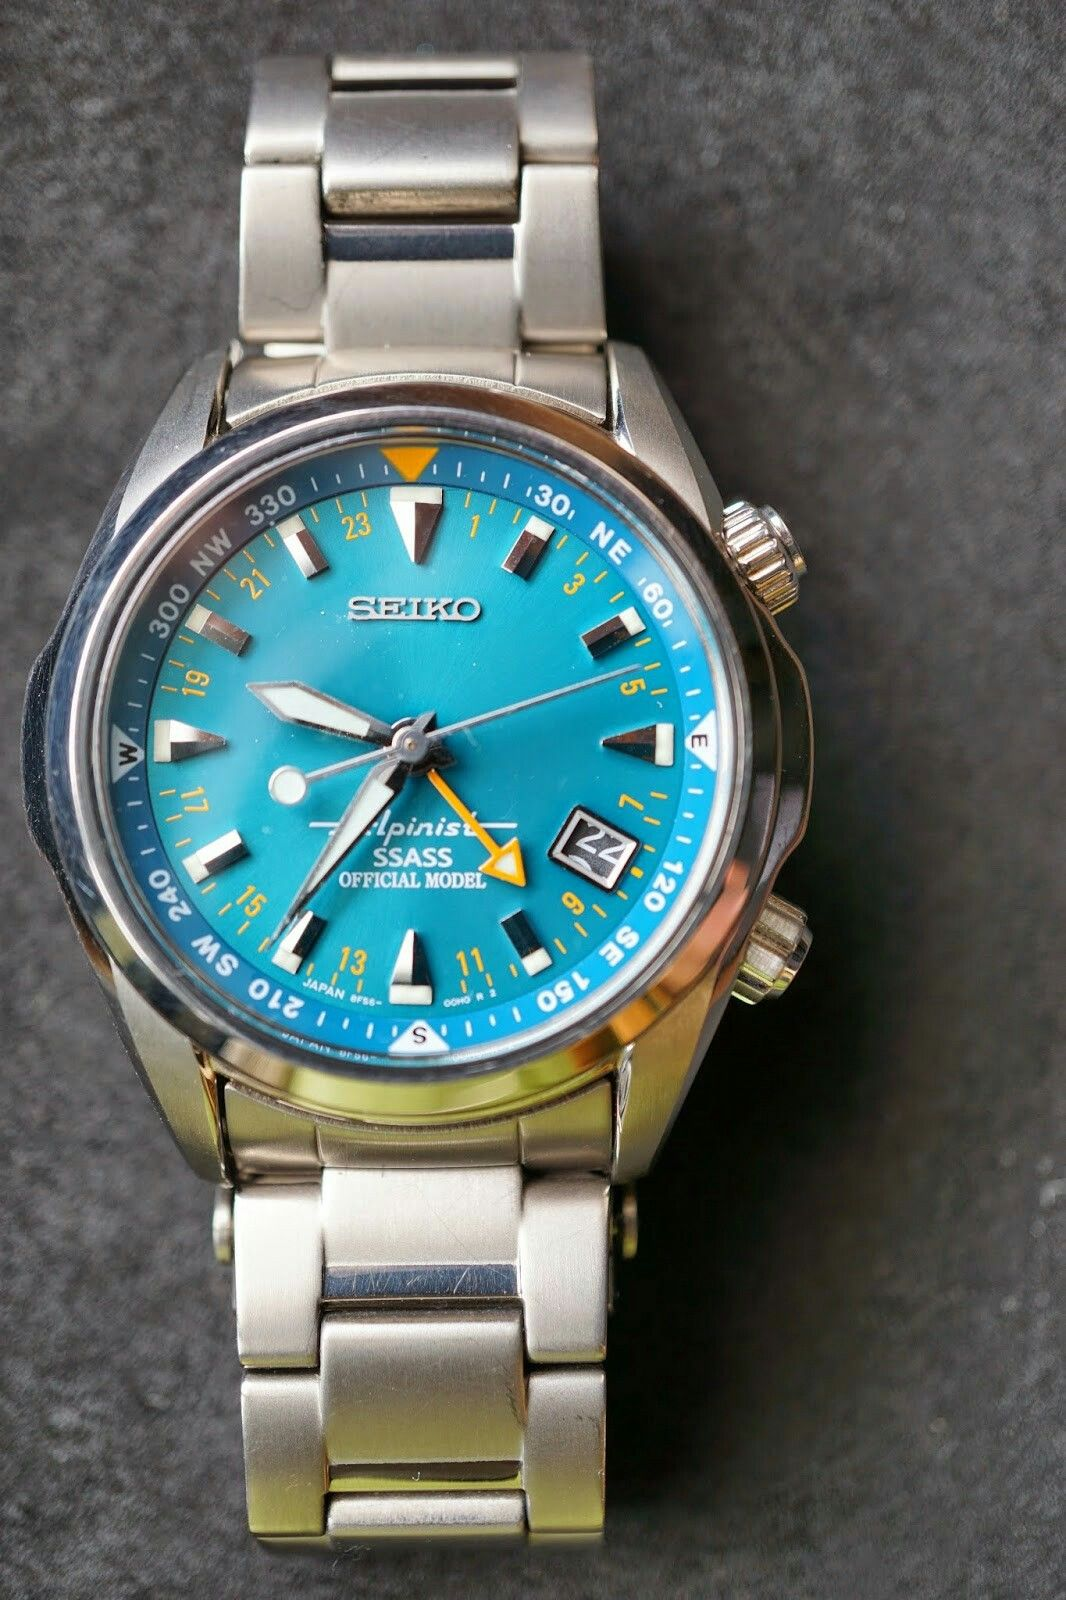 706788febd08a5 Seiko Alpinist SSASS SSASS Official limited model. It features a blue-green  dial. Alpinist SBCJ023 PROSPEX 2003 11 Quartz titanium 10 ATM water  resistant ...